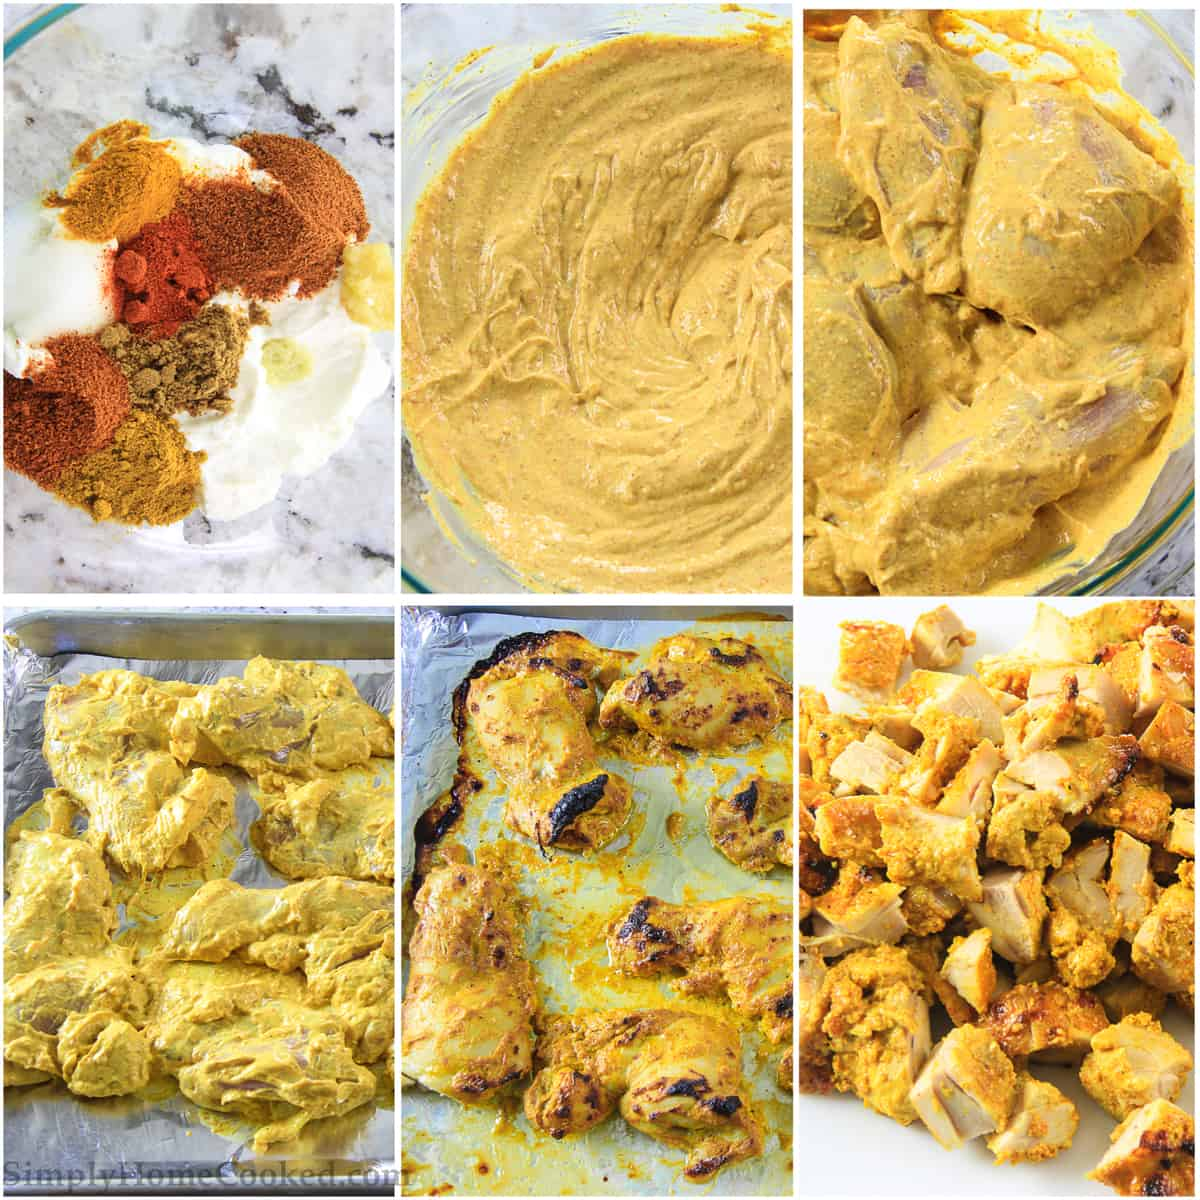 Six tiles showing the steps to make Indian butter chicken marinade, including combining spices with yogurt, covering the chicken, putting it on a baking sheet, and then cooking and cubing the chicken.